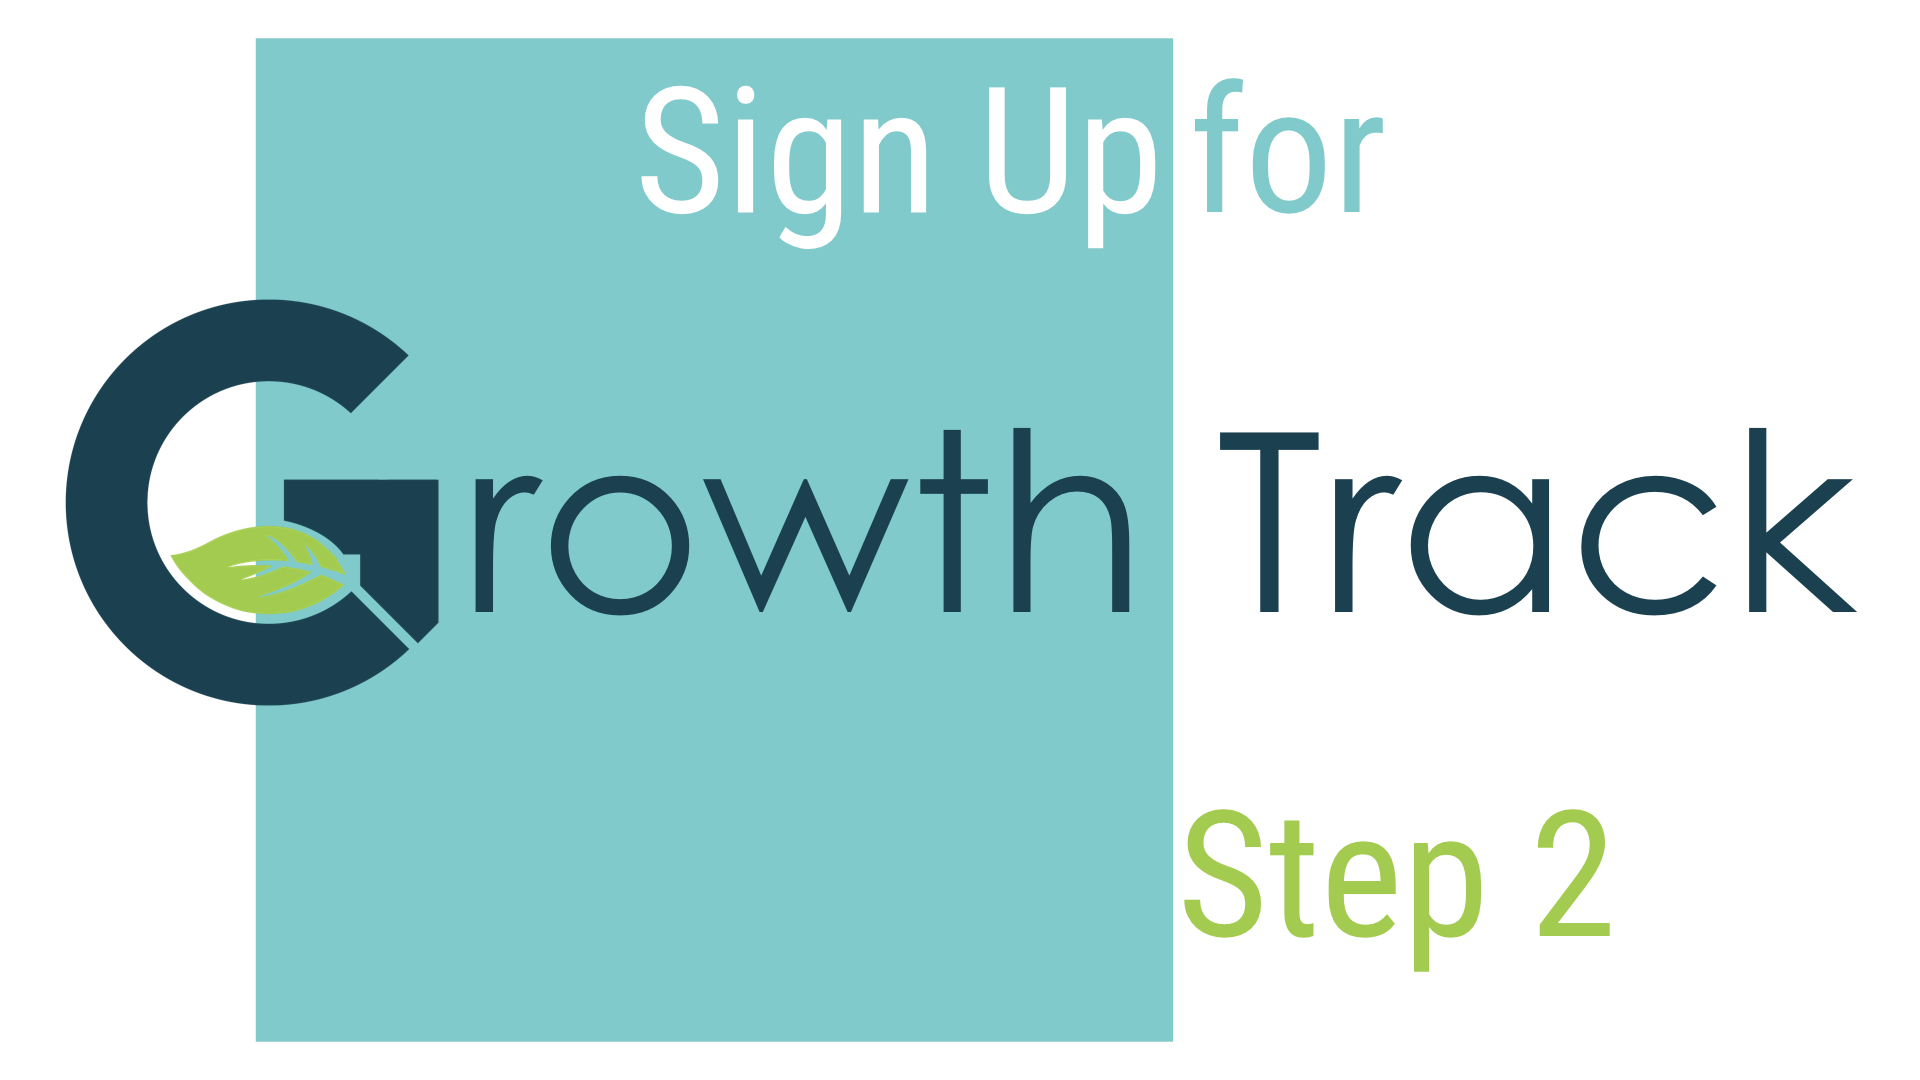 Growth track slides jpeg   step 2 sign up